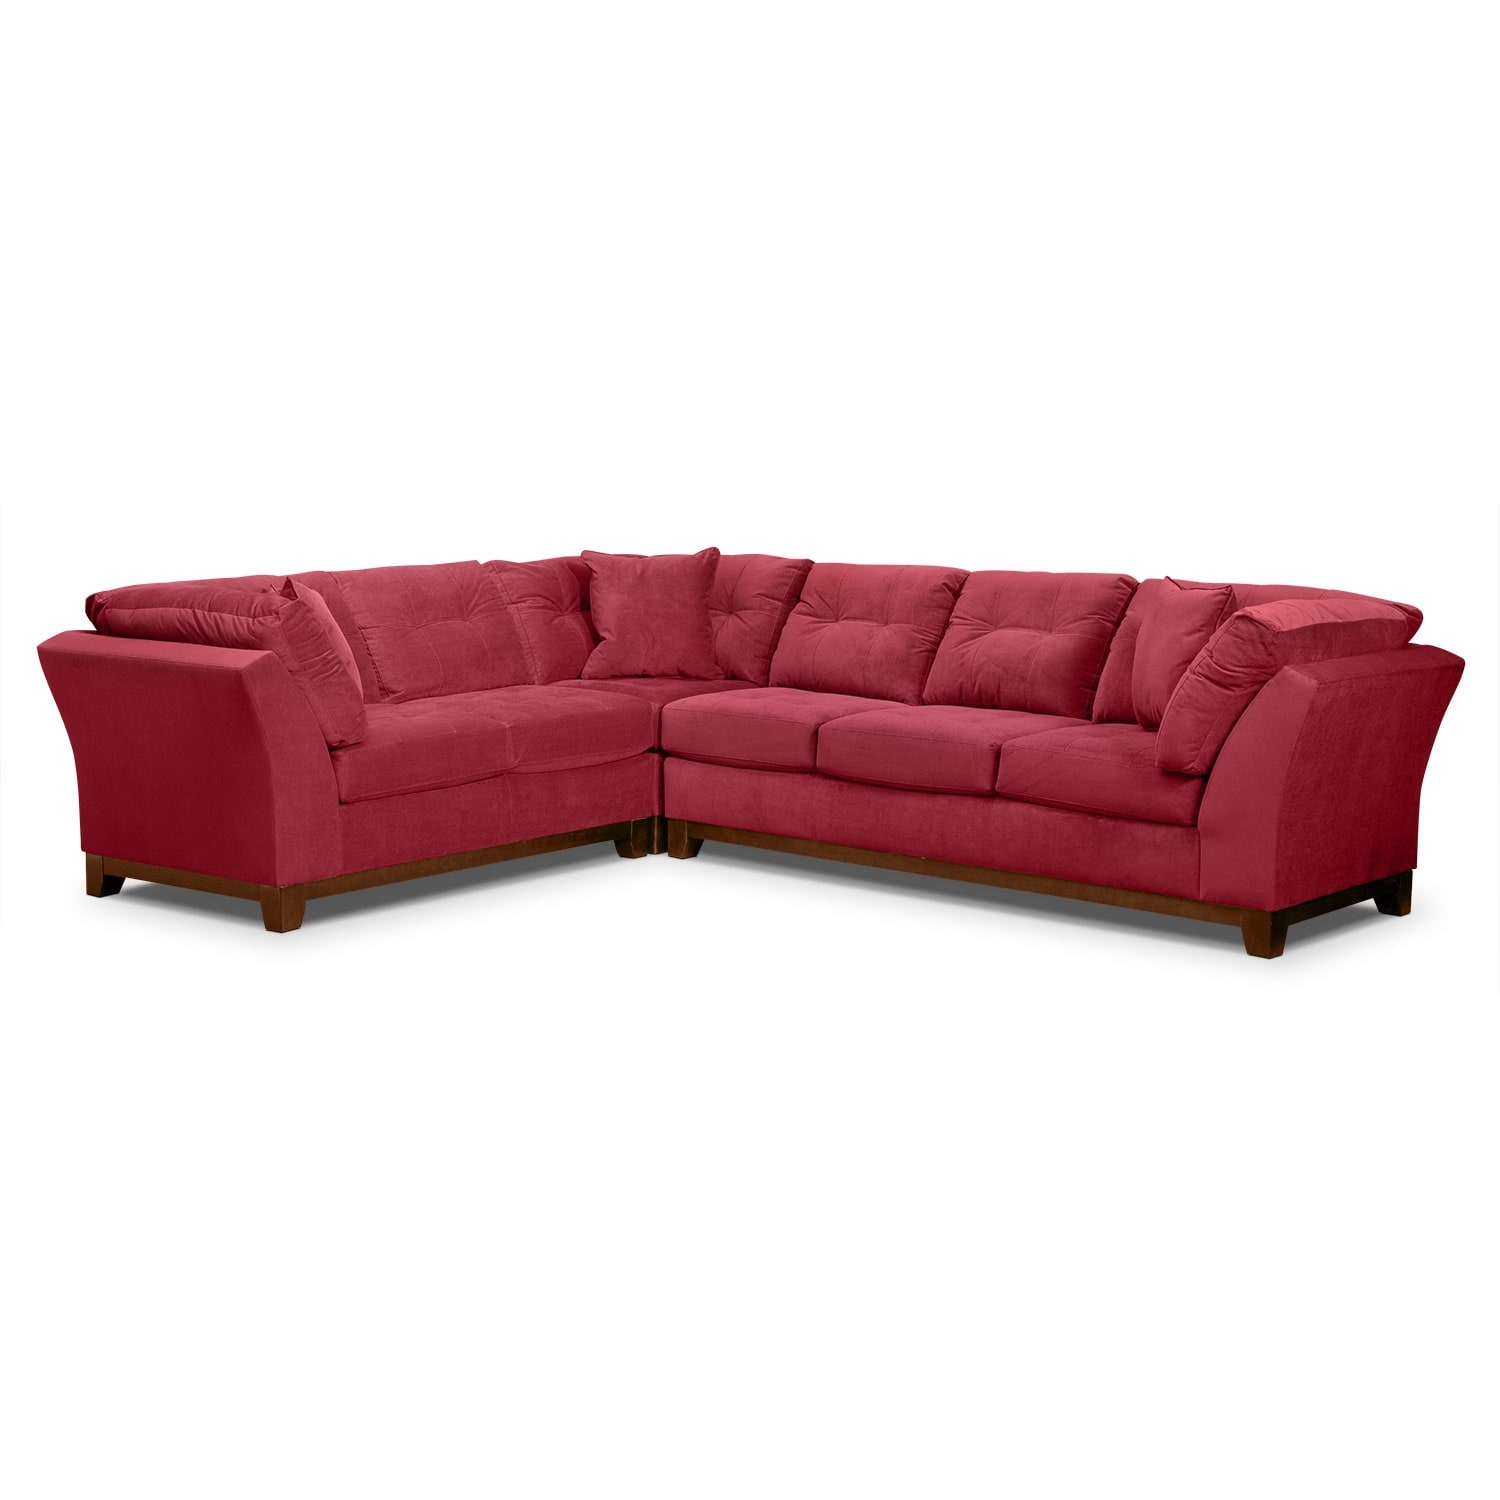 Living Room Furniture - Solace Poppy II 3 Pc. Sectional